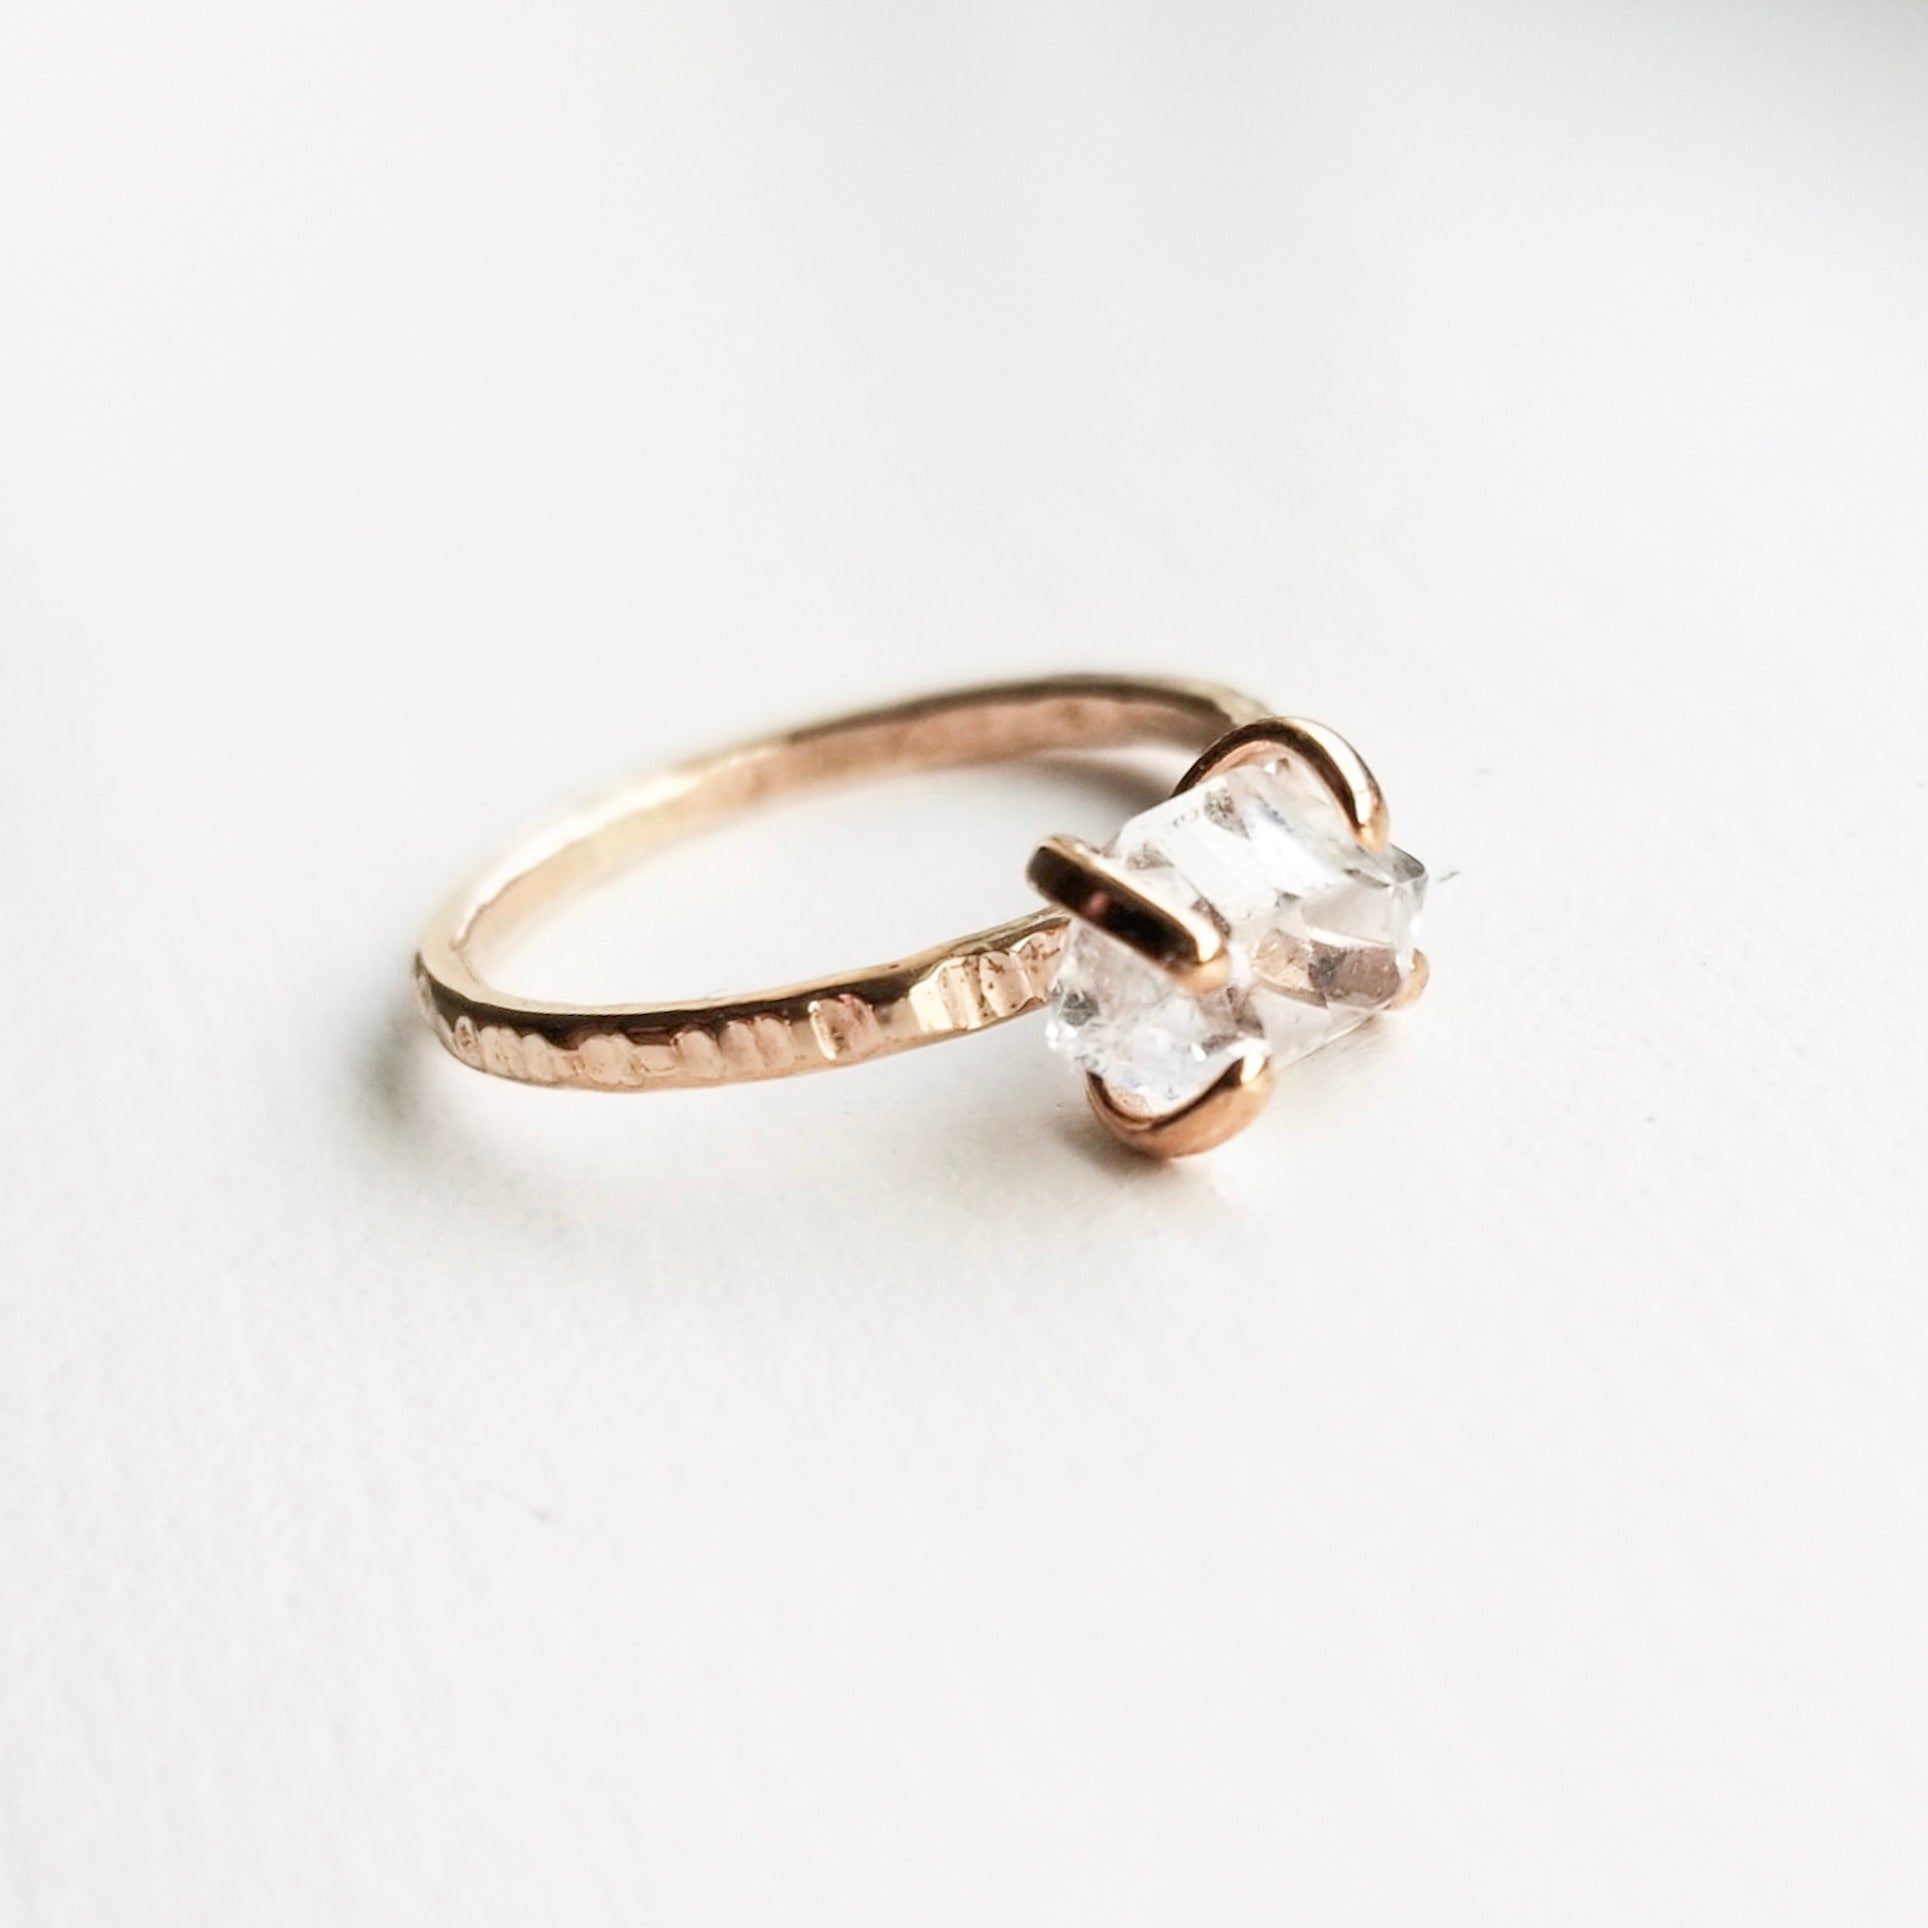 a gold claw style ring with a herkimer diamond on a white background